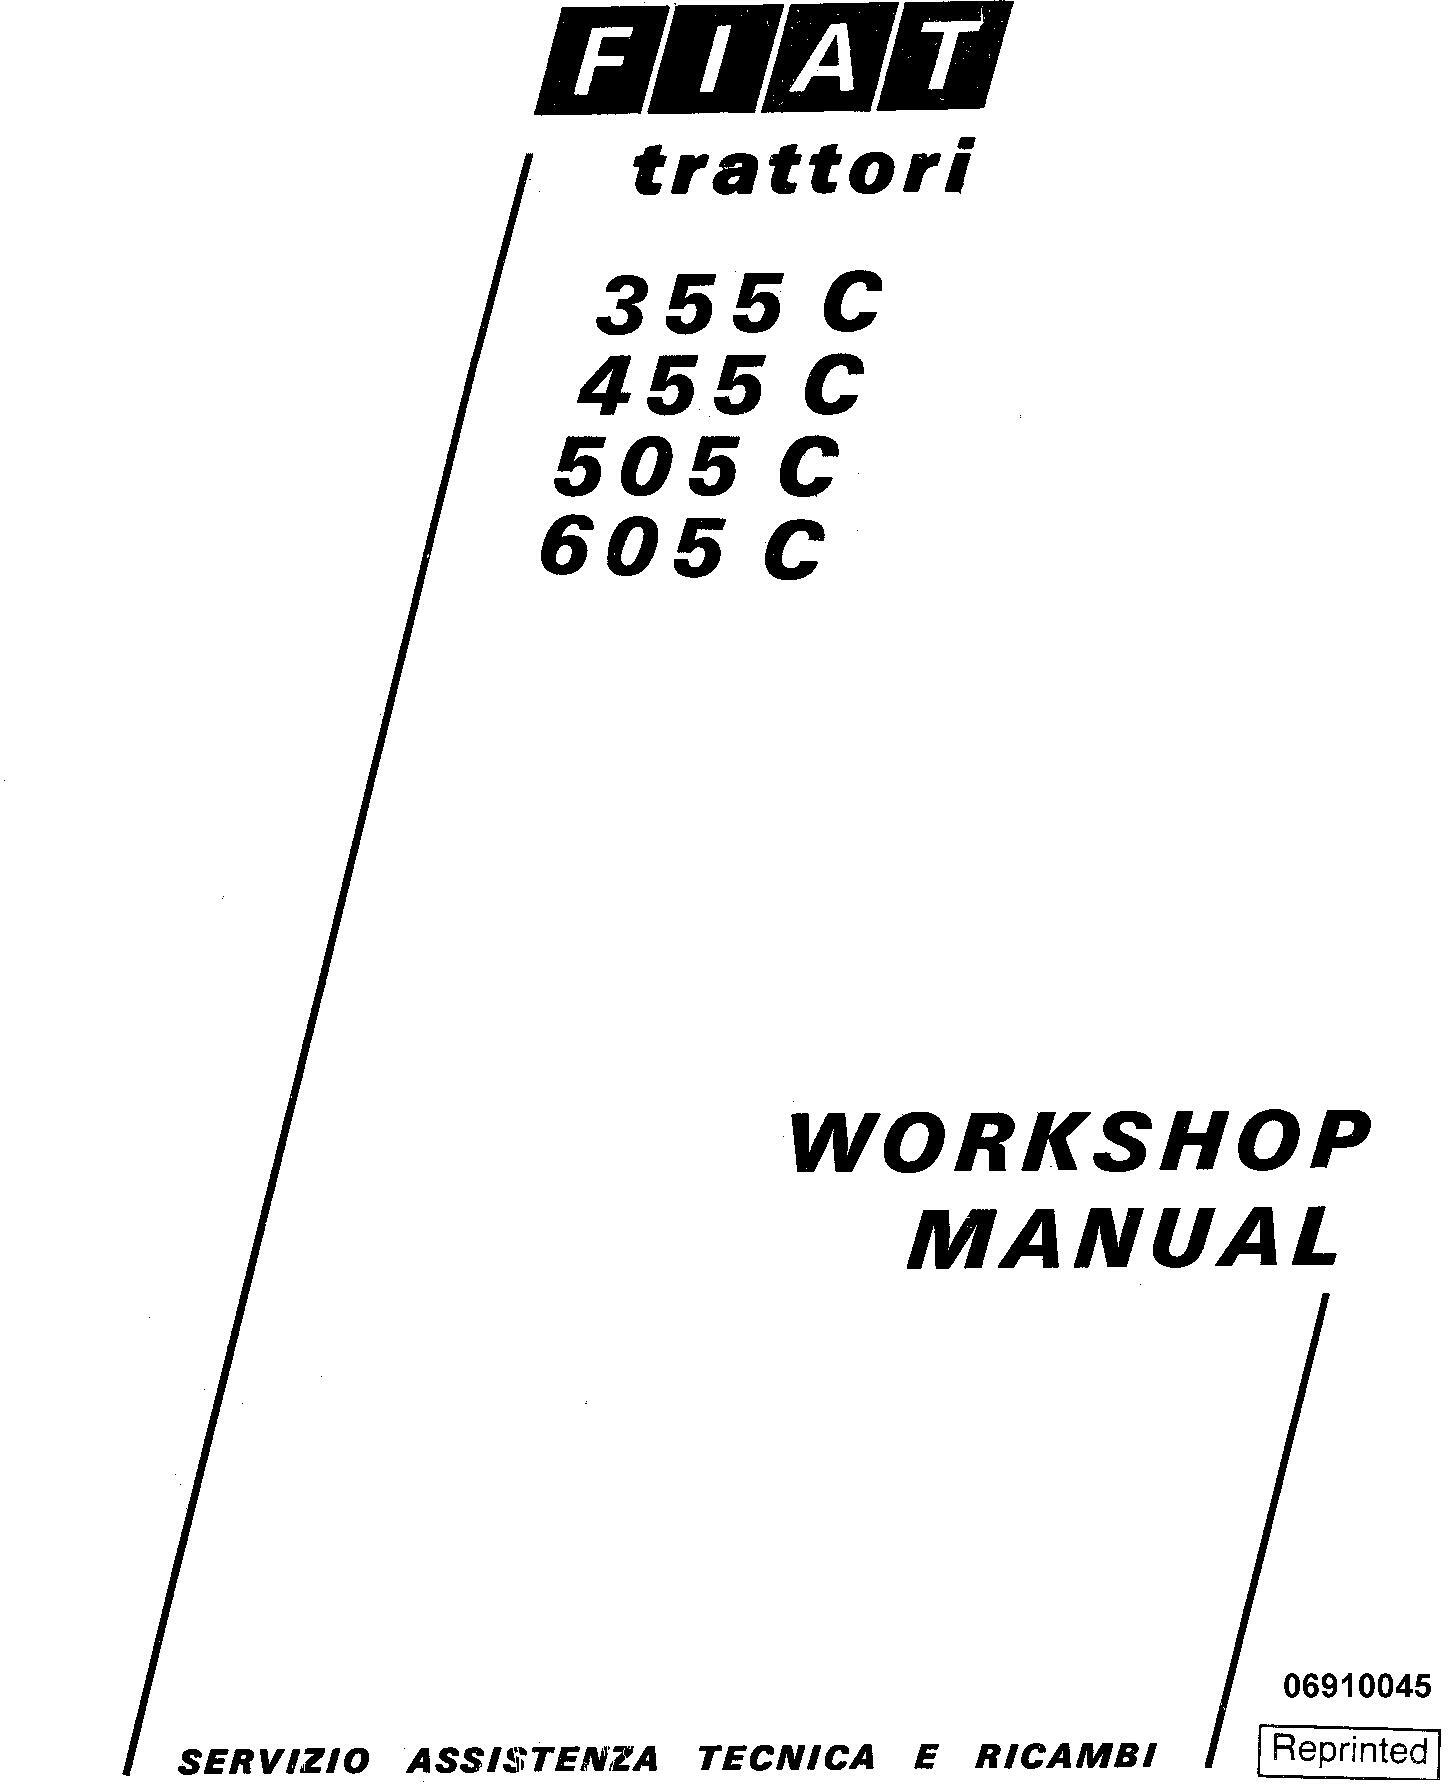 Fiat 355C, 455C, 505C, 605C Crawler Tractor Workshop Service Manual (6035416200)